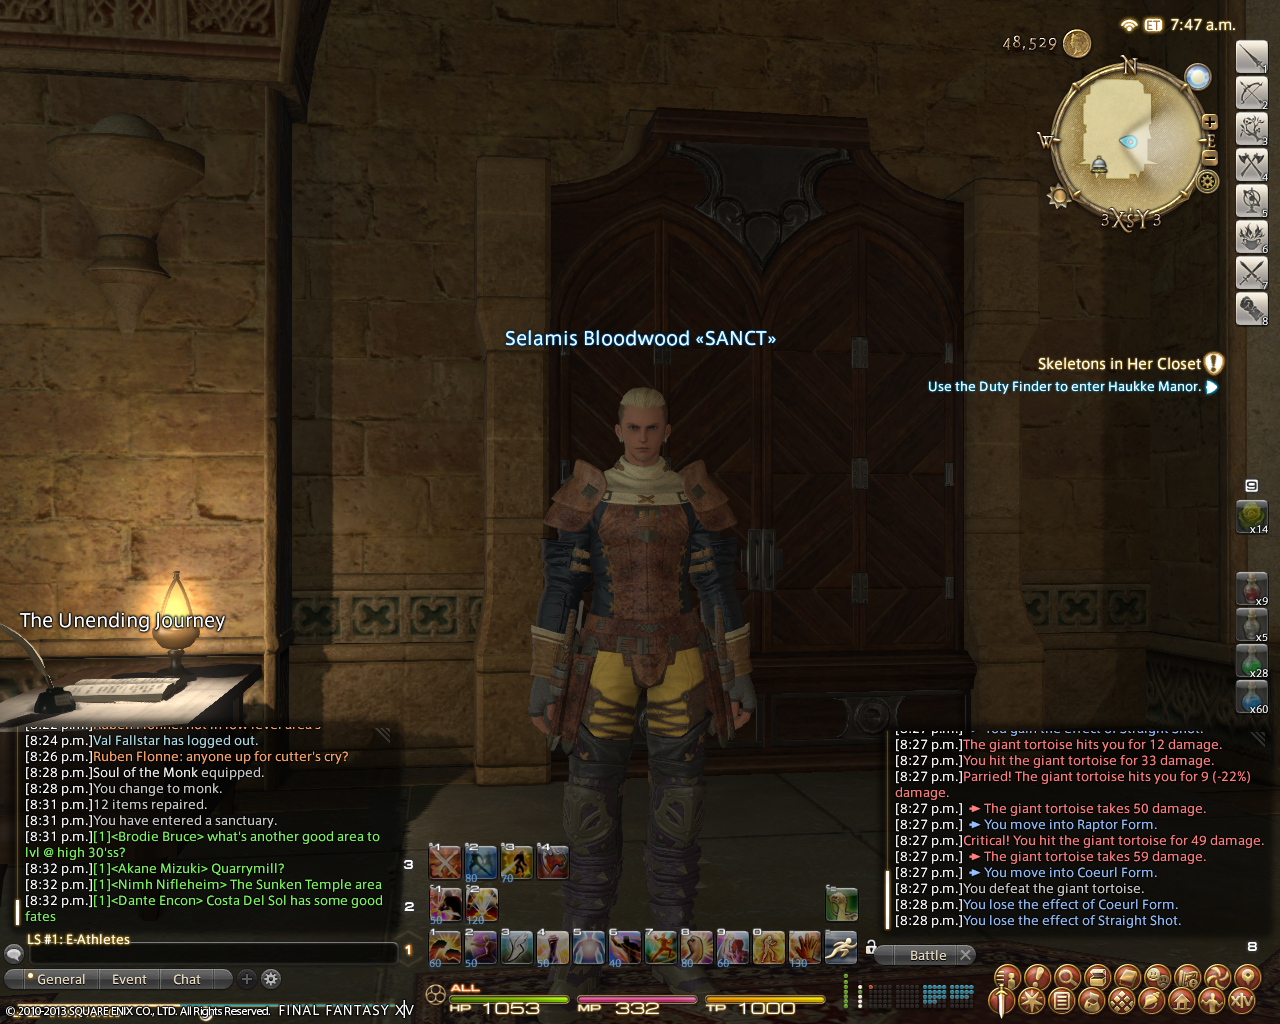 selamis ffxiv make petbar command toggle your visibility pictures remember anyone post know